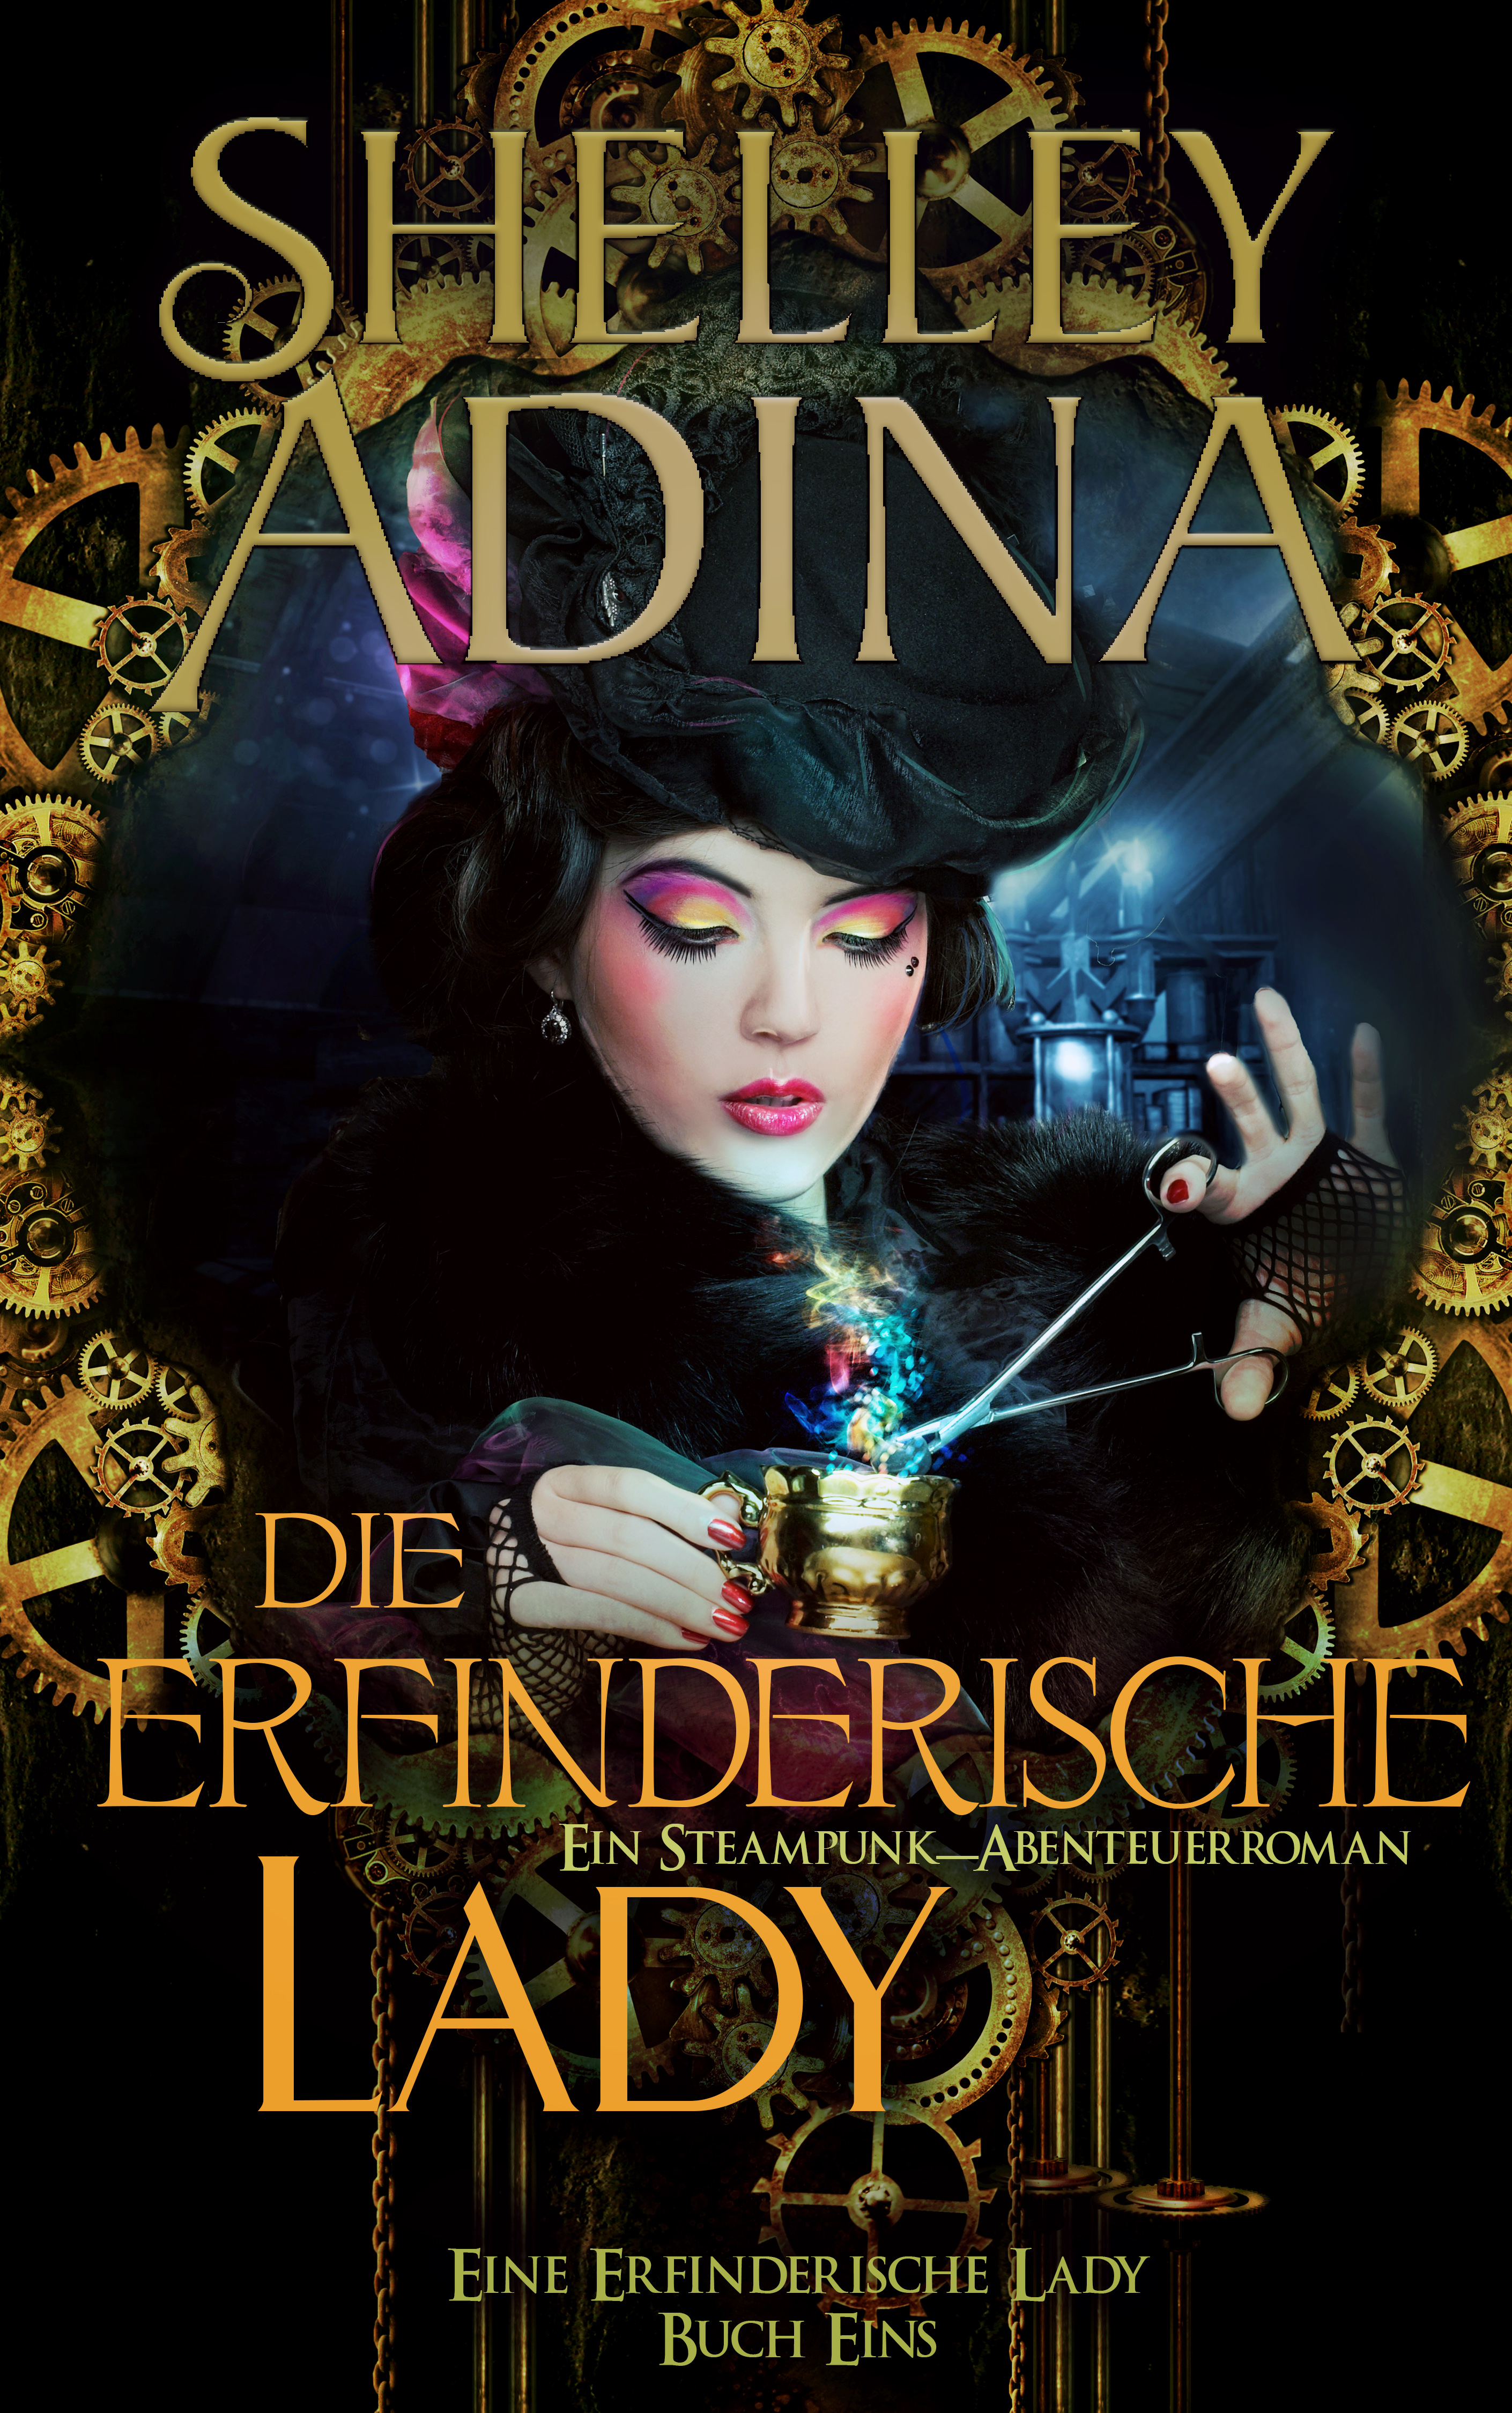 Die Erfinderische Lady by Shelley Adina